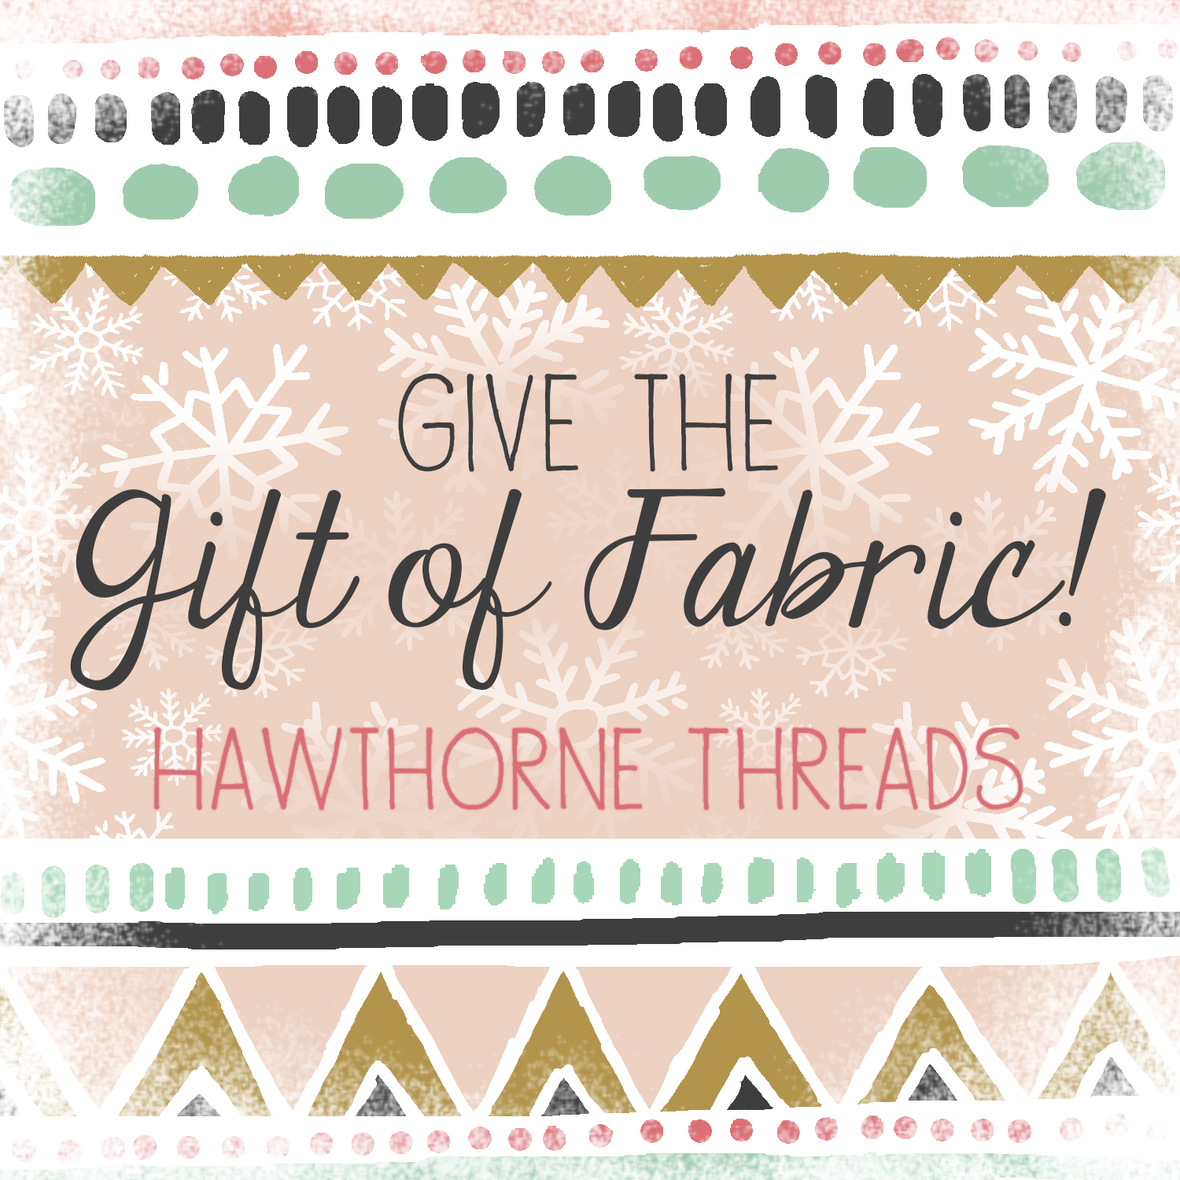 Hawthorne Threads Gift Certificate 2016 with frosty border